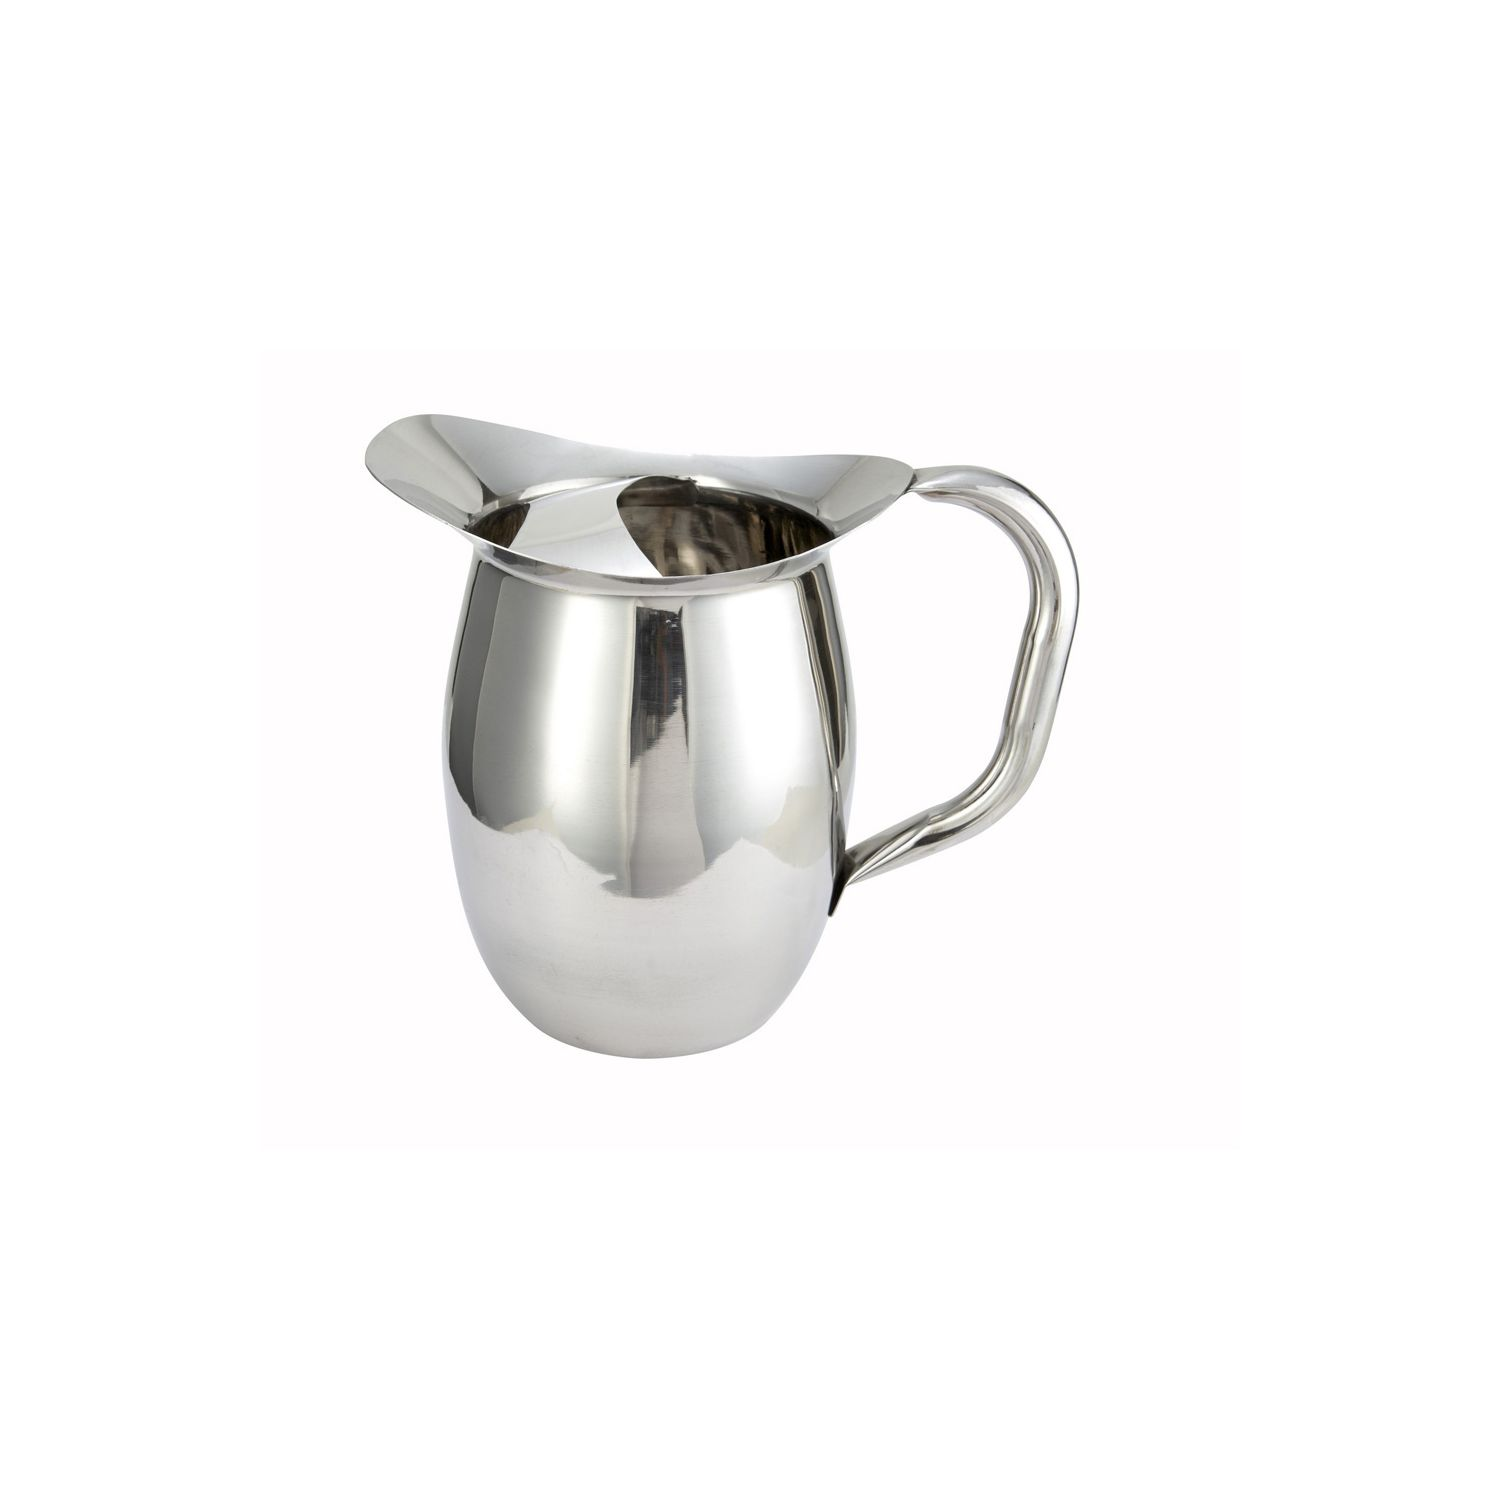 2-Quart Hammered Bell Pitcher Winco WPB-2H Stainless Steel